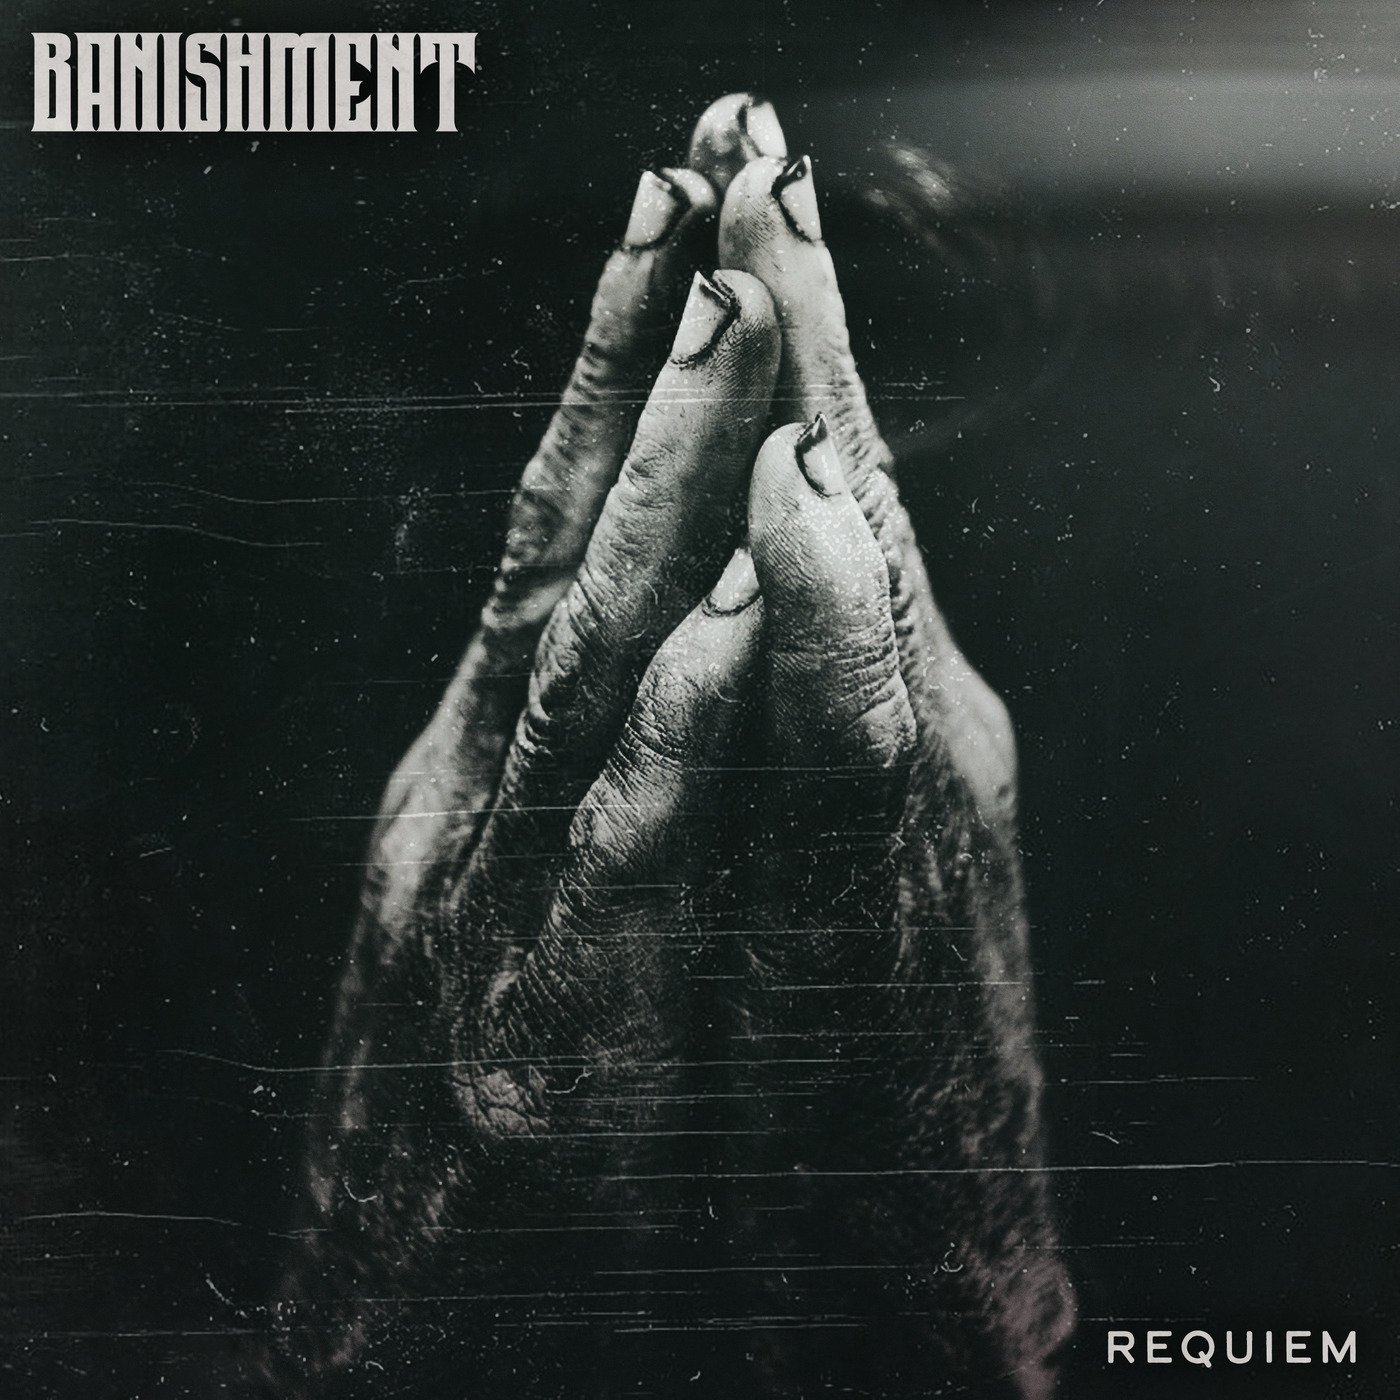 Banishment - Requiem [single] (2019)